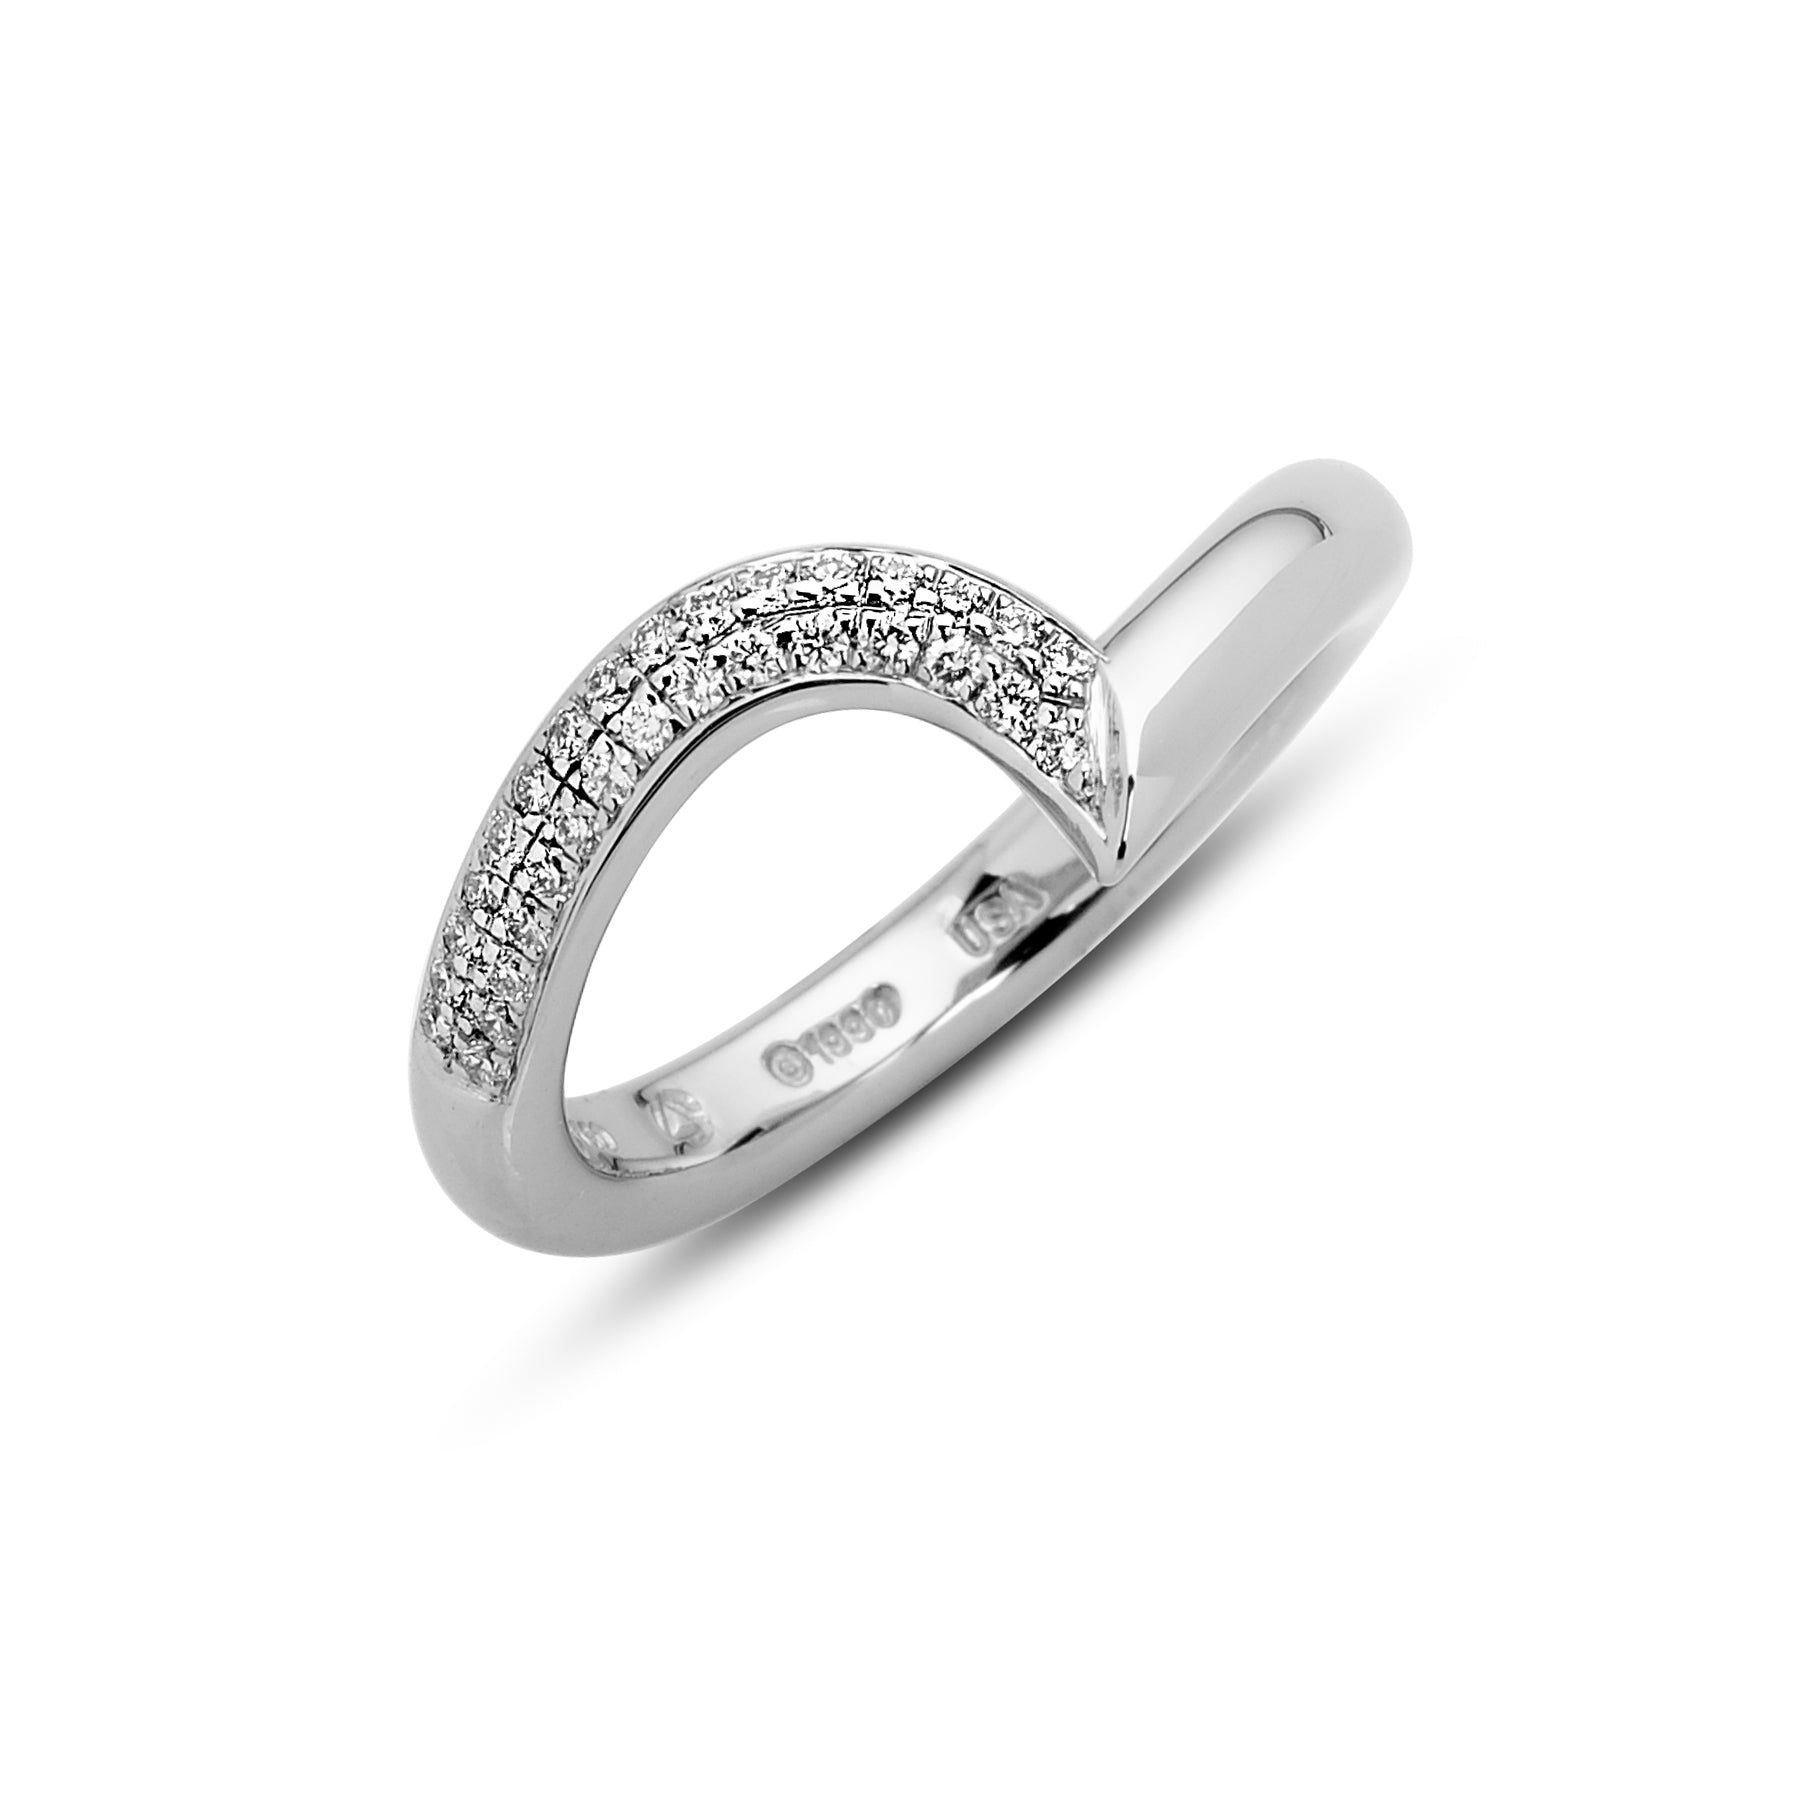 Swirl and Wing Band With 2 Rows of Pave Steven Kretchmer